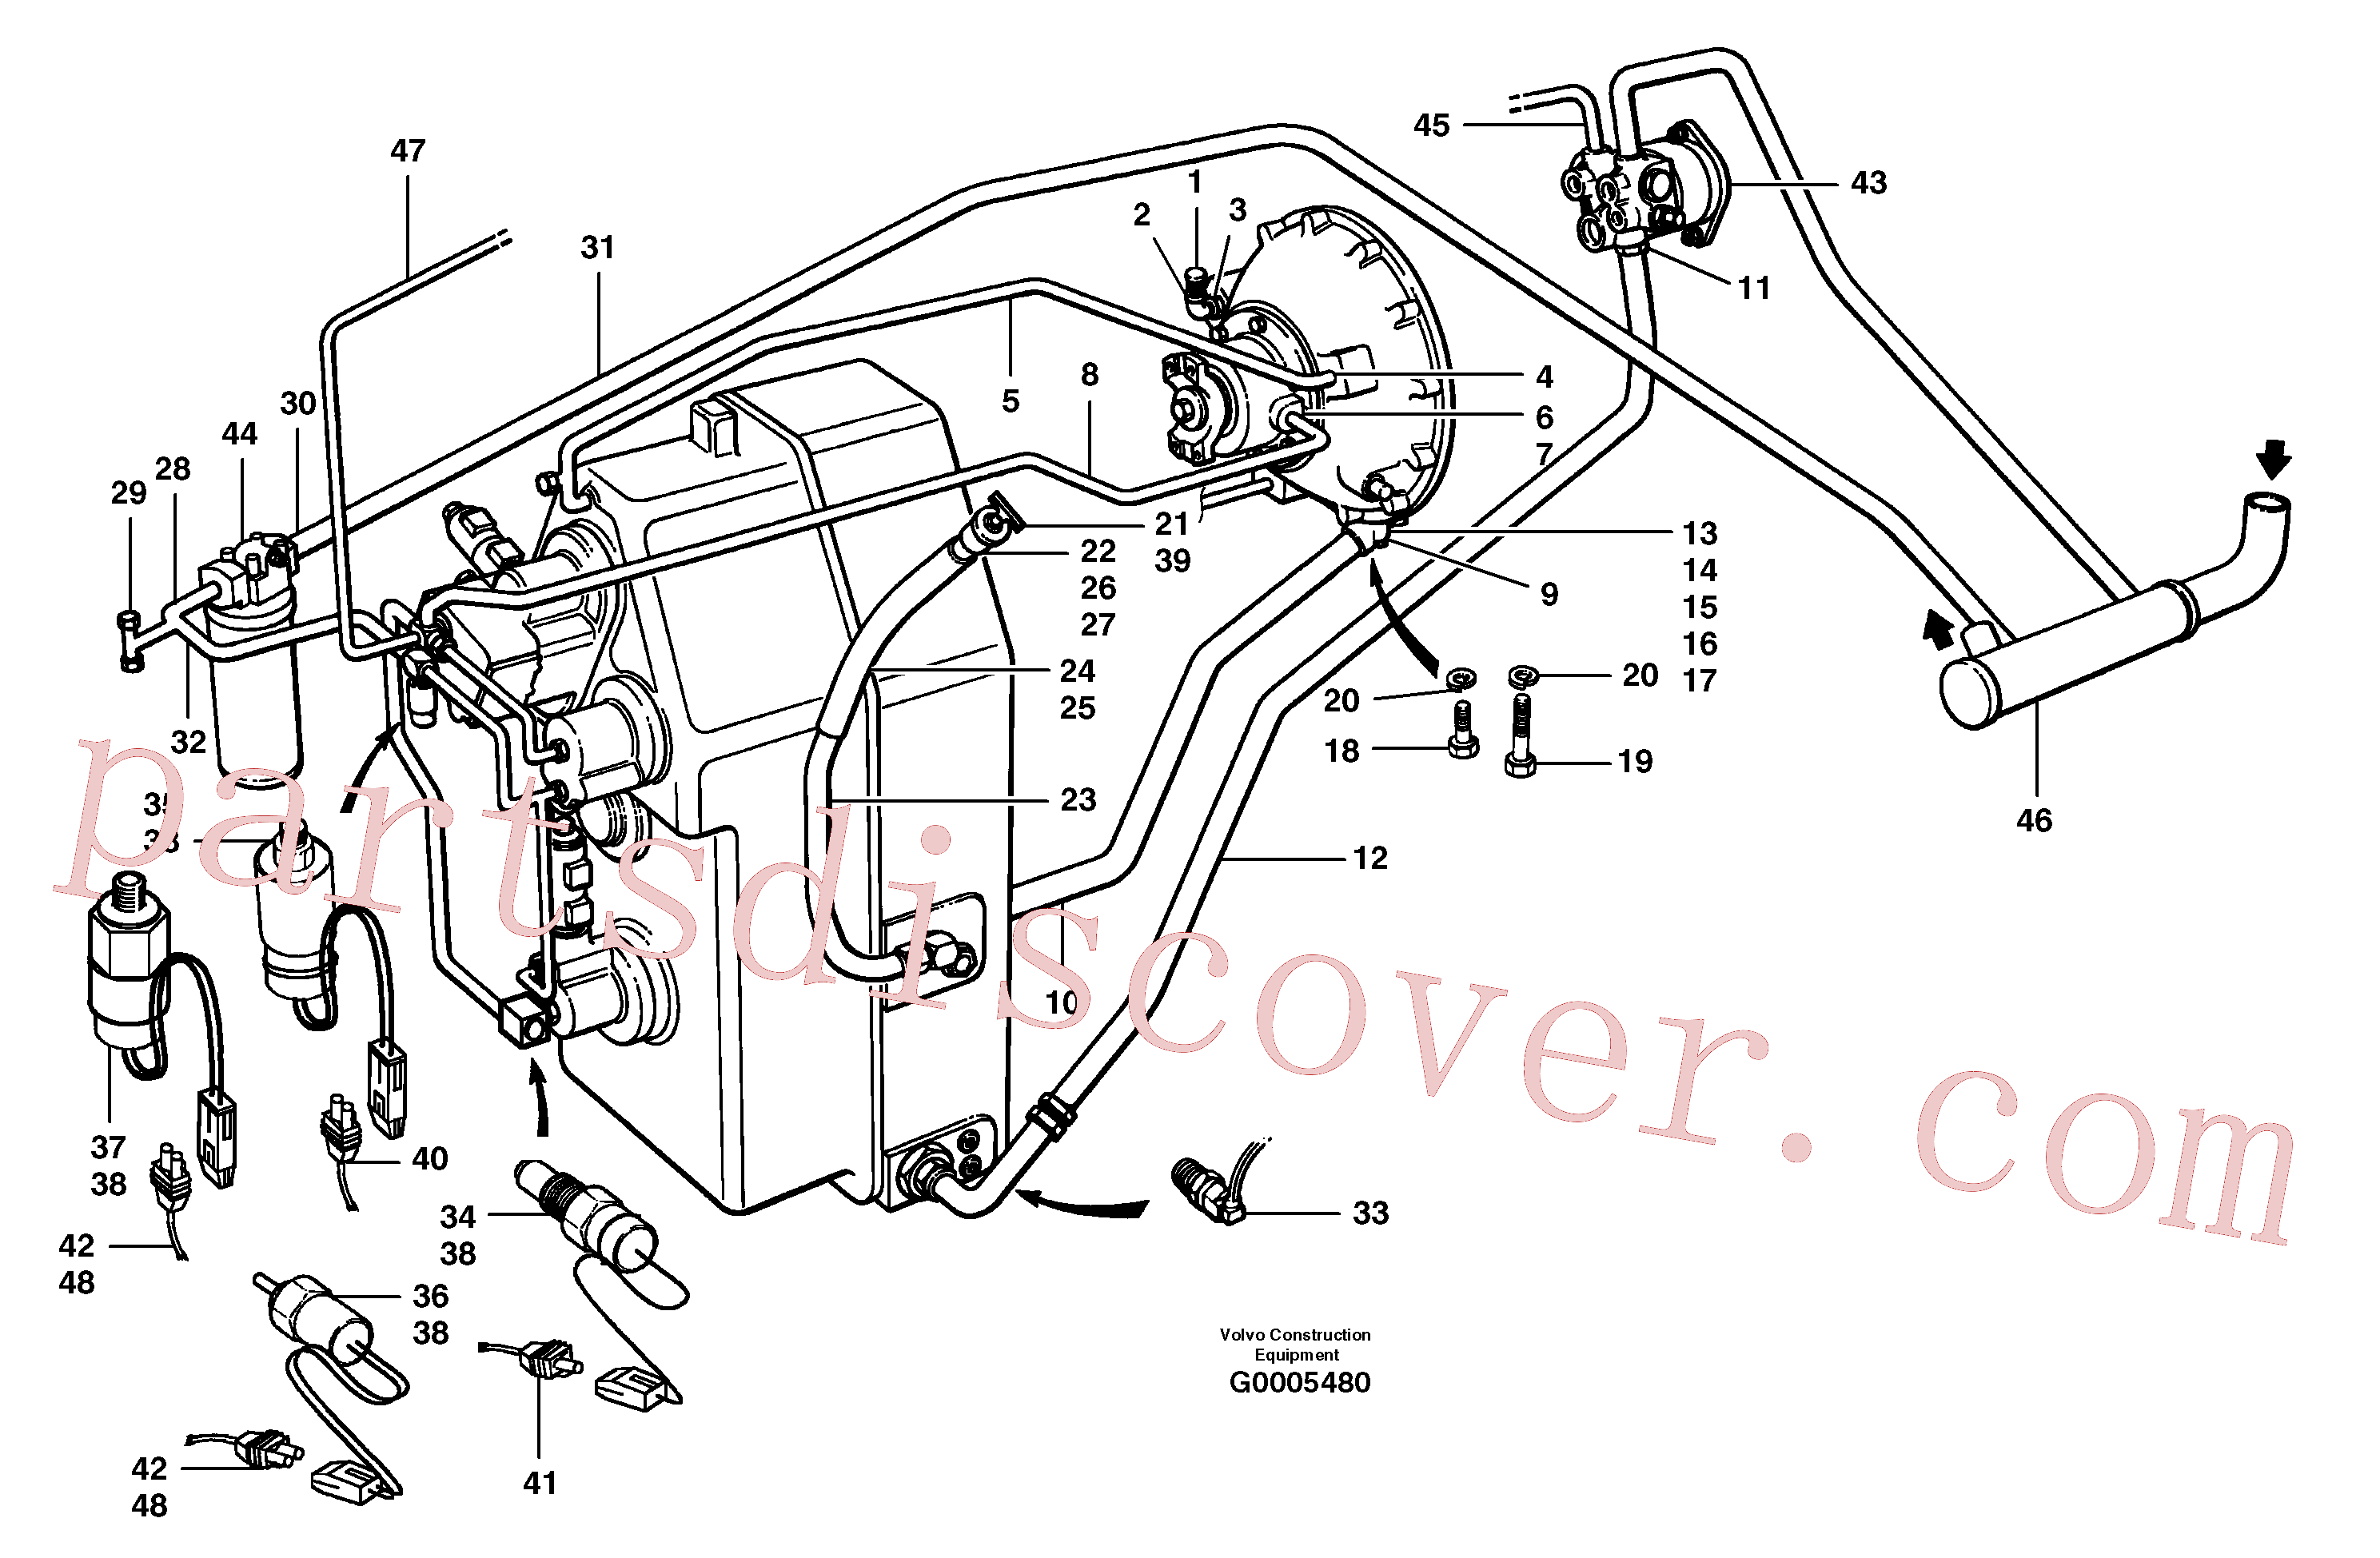 CH30A-06ZI for Volvo Transmission hydraulic circuit(G0005480 assembly)